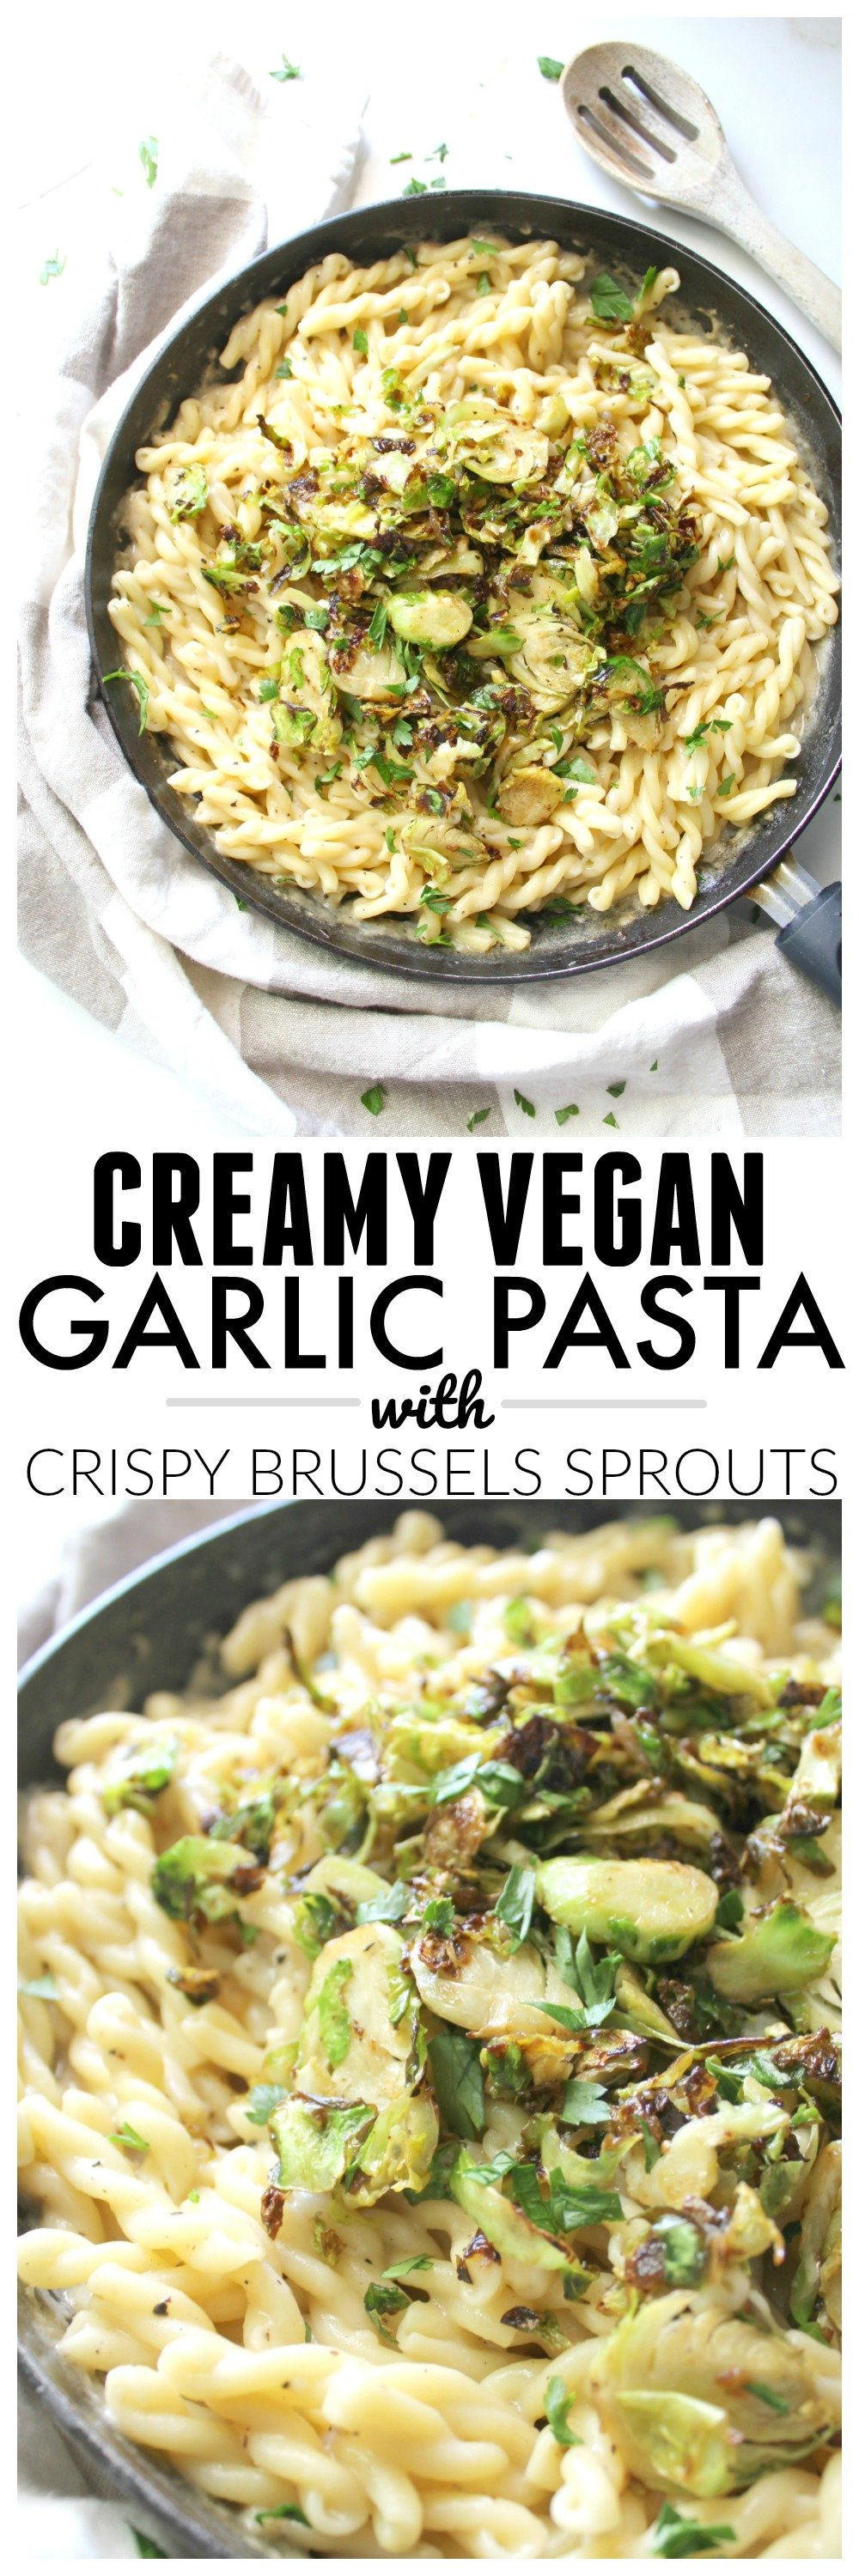 ThisCreamy Vegan Garlic Pasta with Crispy Brussels Sprouts is simple to make and the perfect Fall dinner to keep you warm and satisfied!   ThisSavoryVegan.com #vegan #veganpasta